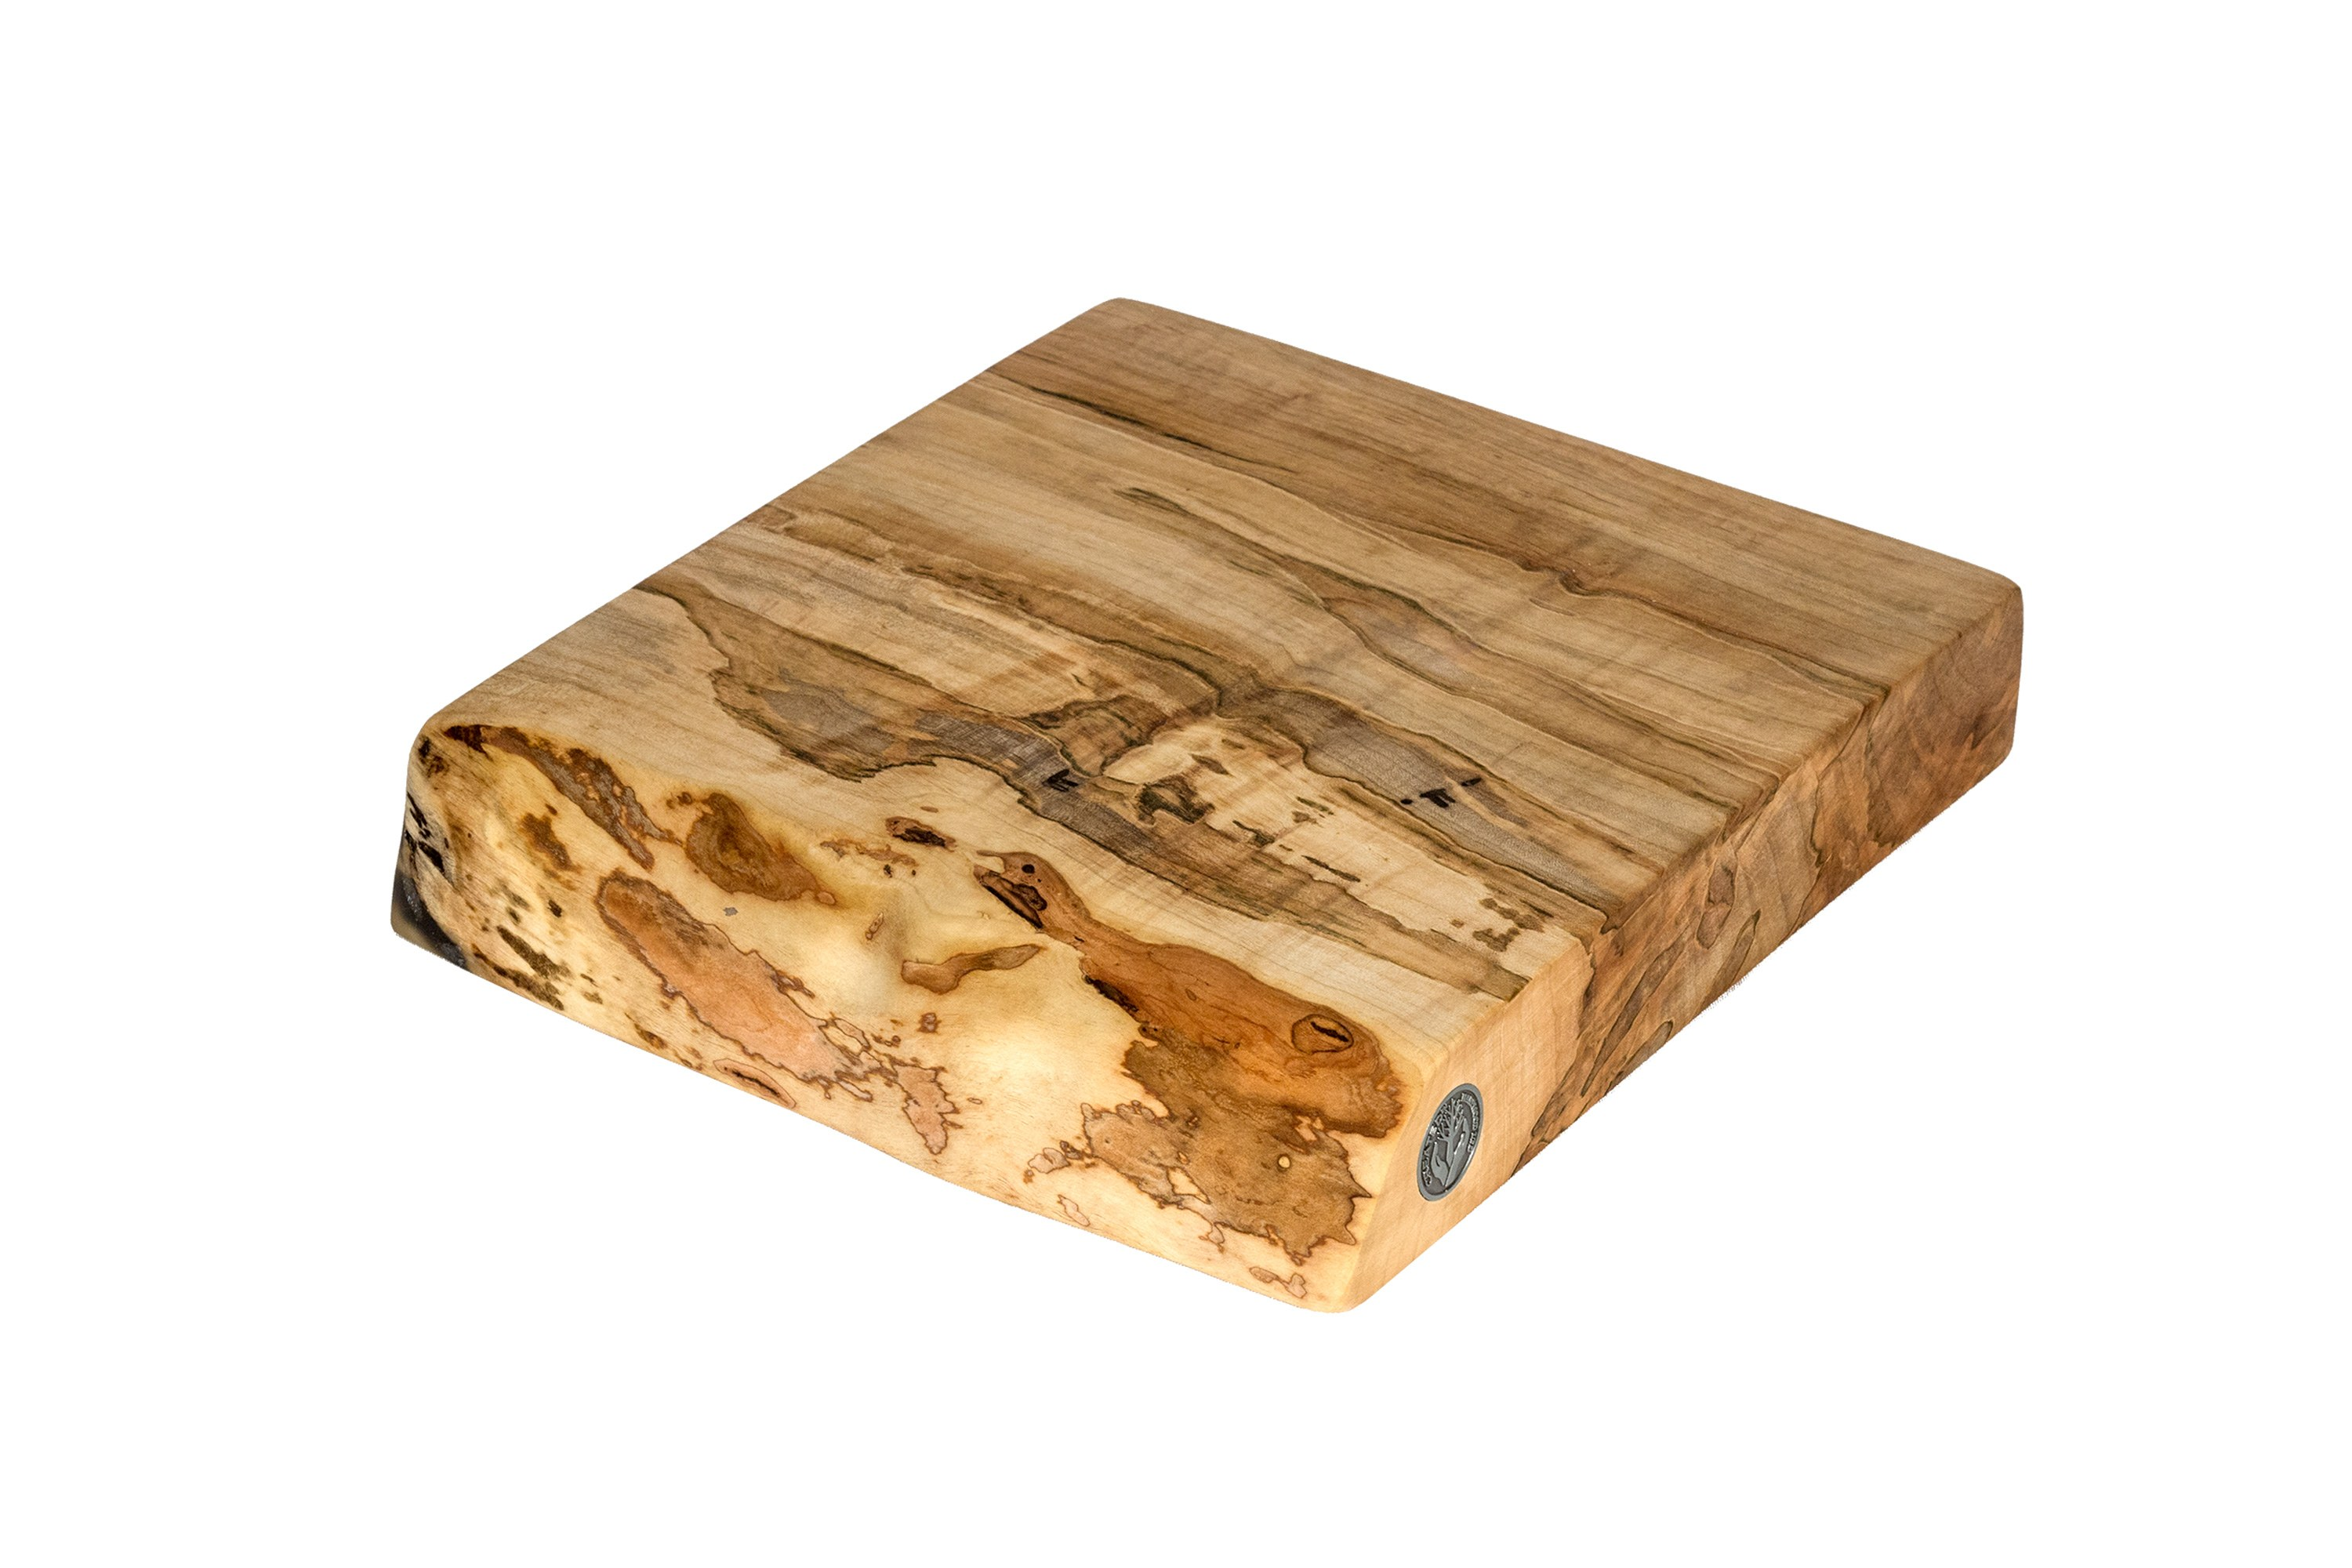 Live Edge Maple Cutting Board #075 - 10